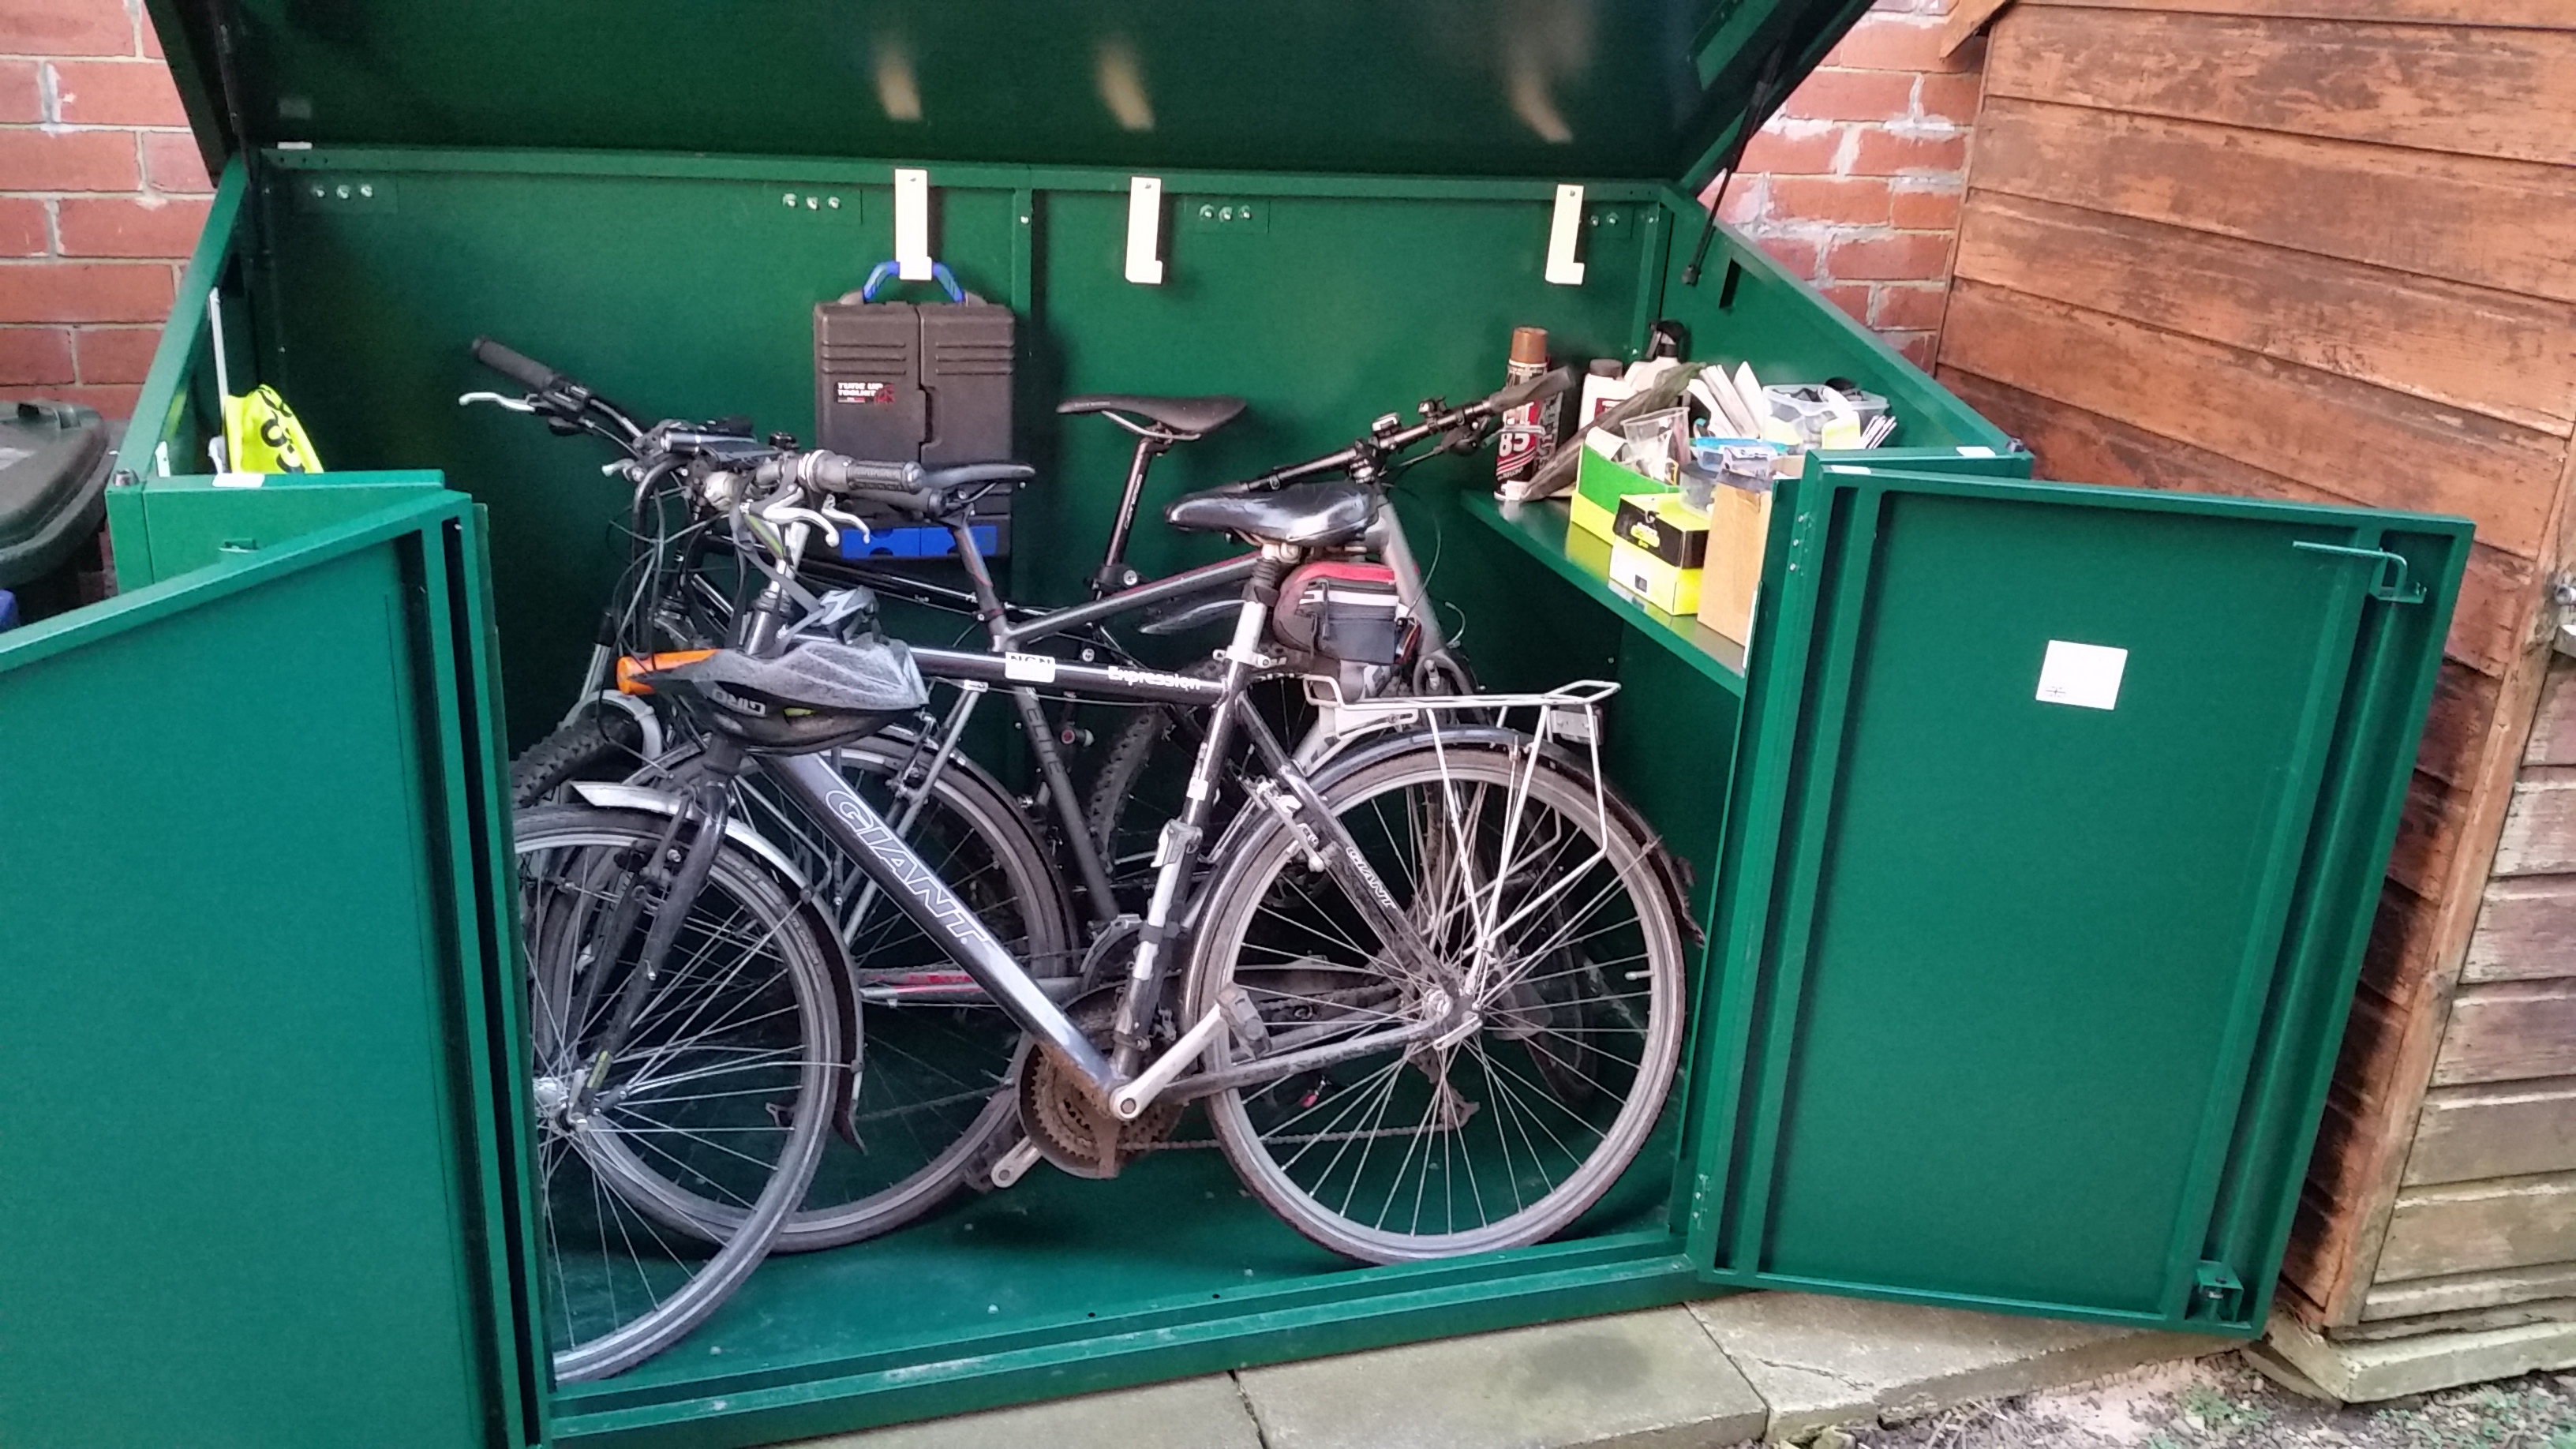 Great quality and secure metal shed - 4 bikes is pushing it though